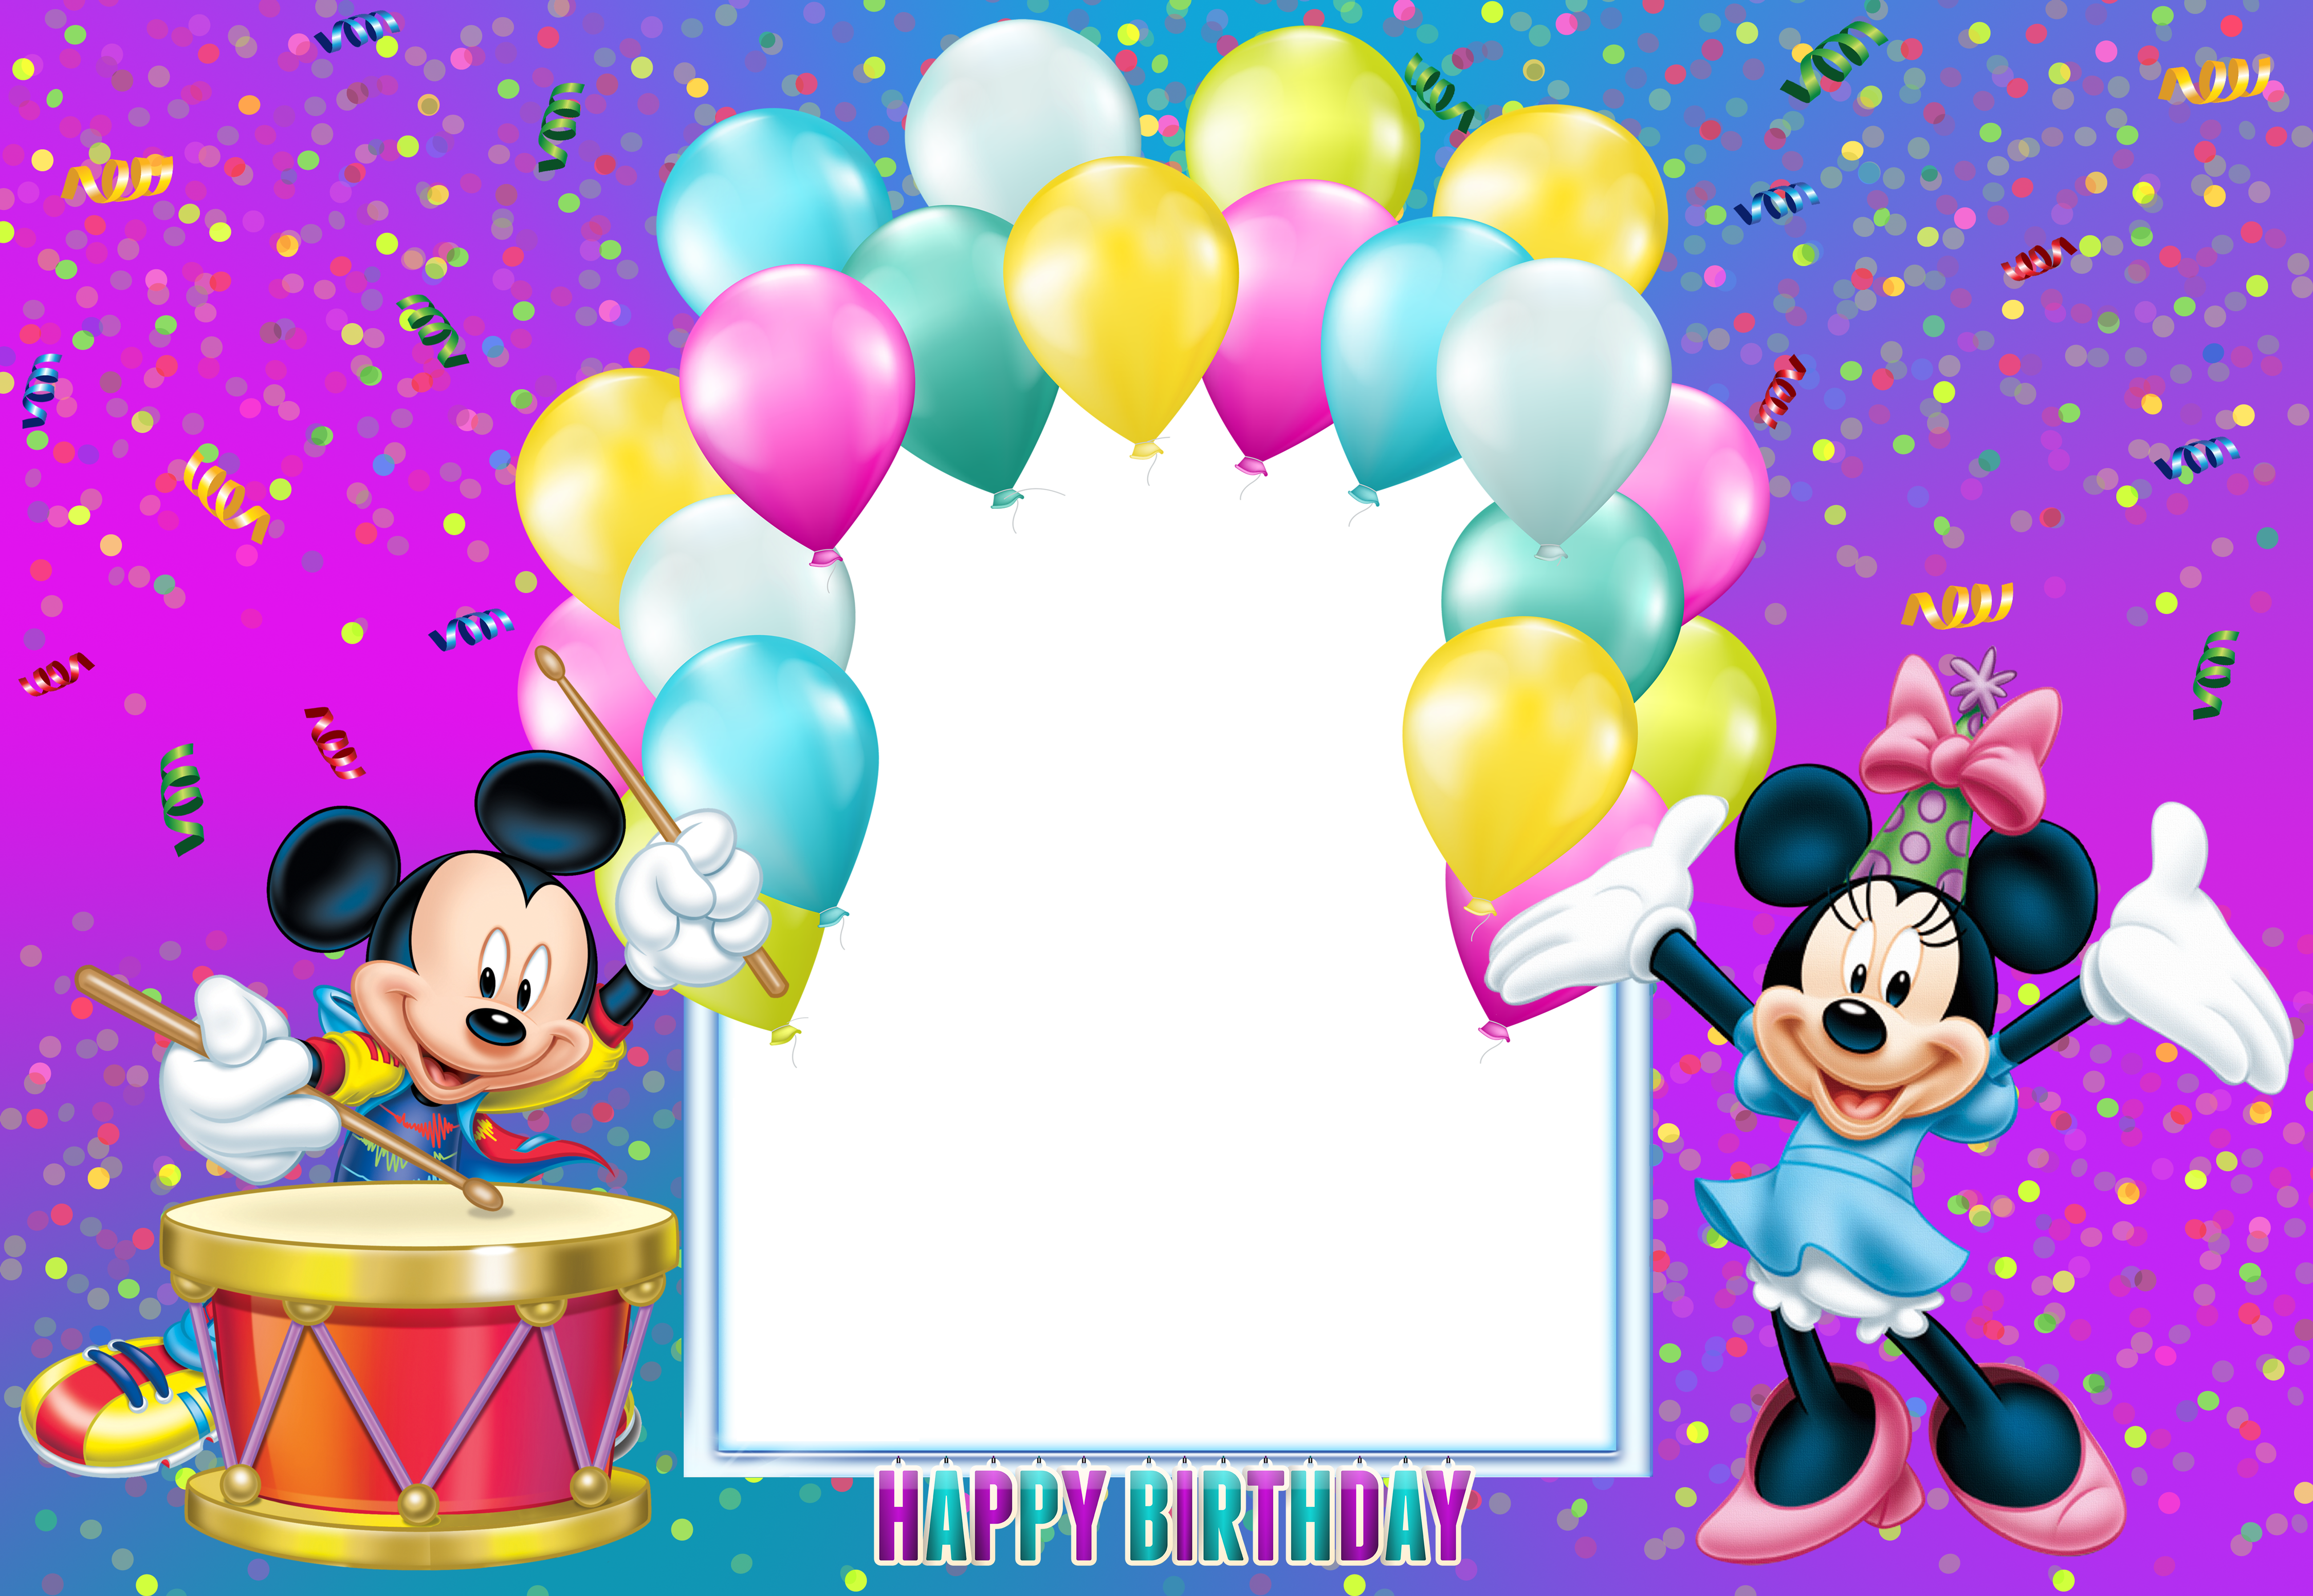 Rock star birthday boy clipart graphic freeuse stock Happy Birthday Mickey Mouse Transparent Kids Frame | Gallery ... graphic freeuse stock